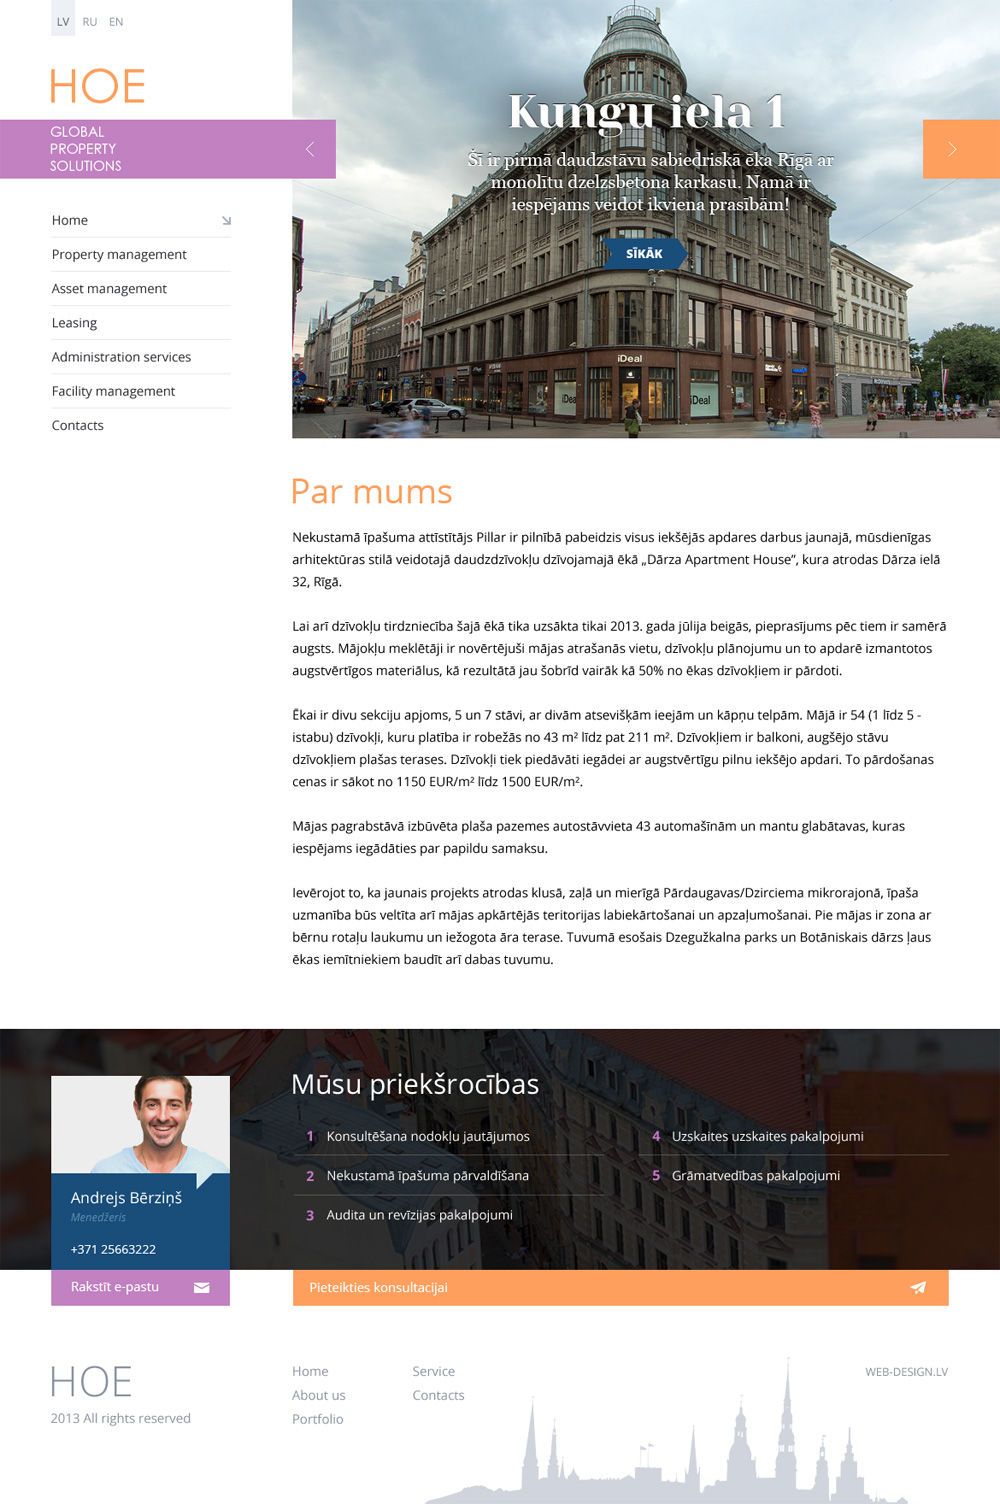 Global Property Solutions - Портфолио web-design